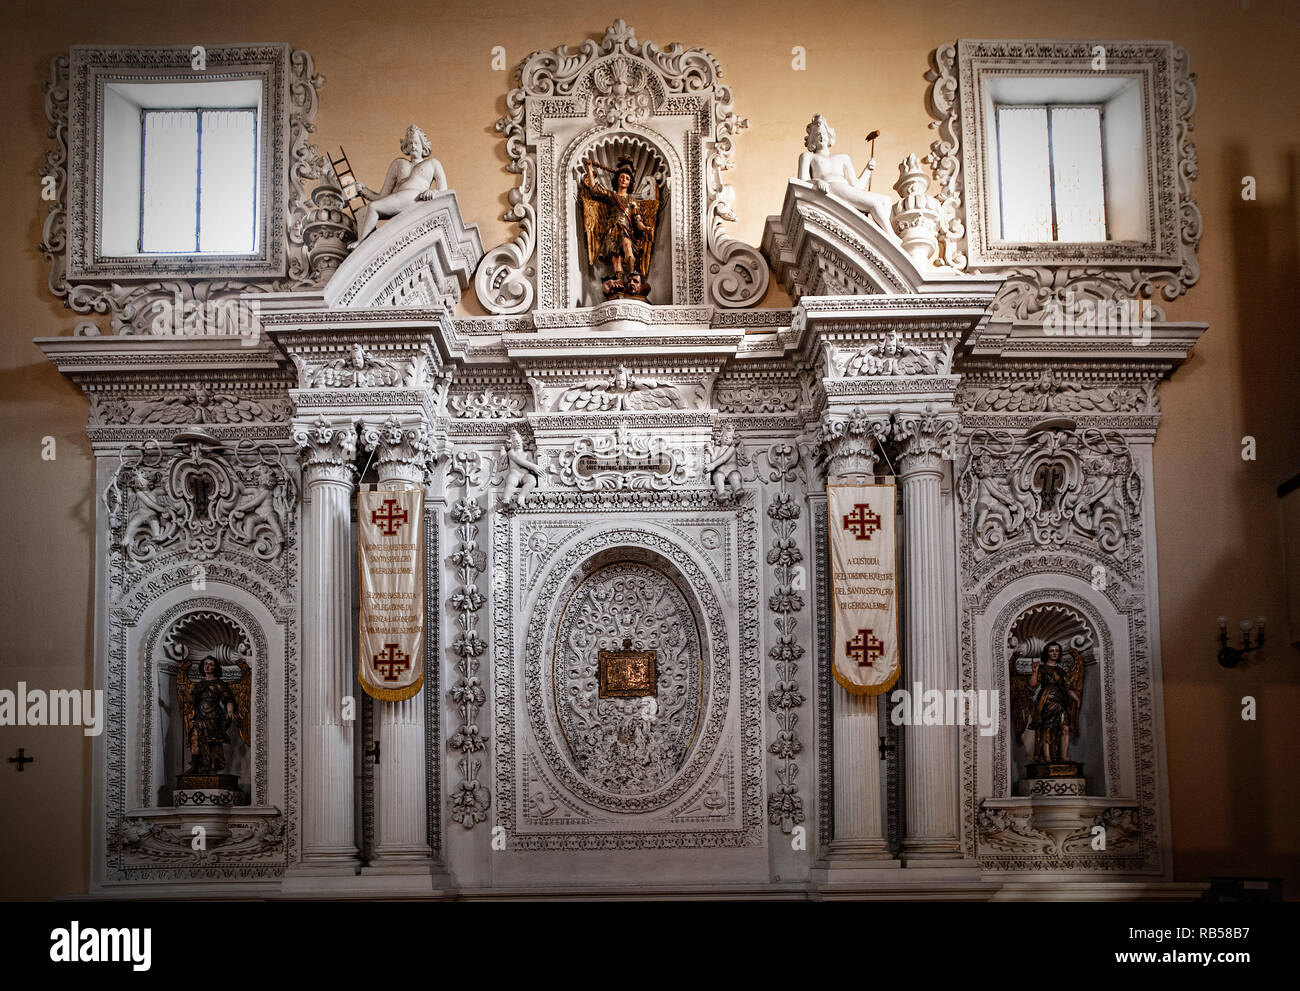 Italy Basilicata Potenza Santa Maria del Sepolcro Church tabernacle with relic of the blood of Christ,baroque altar, - Stock Image